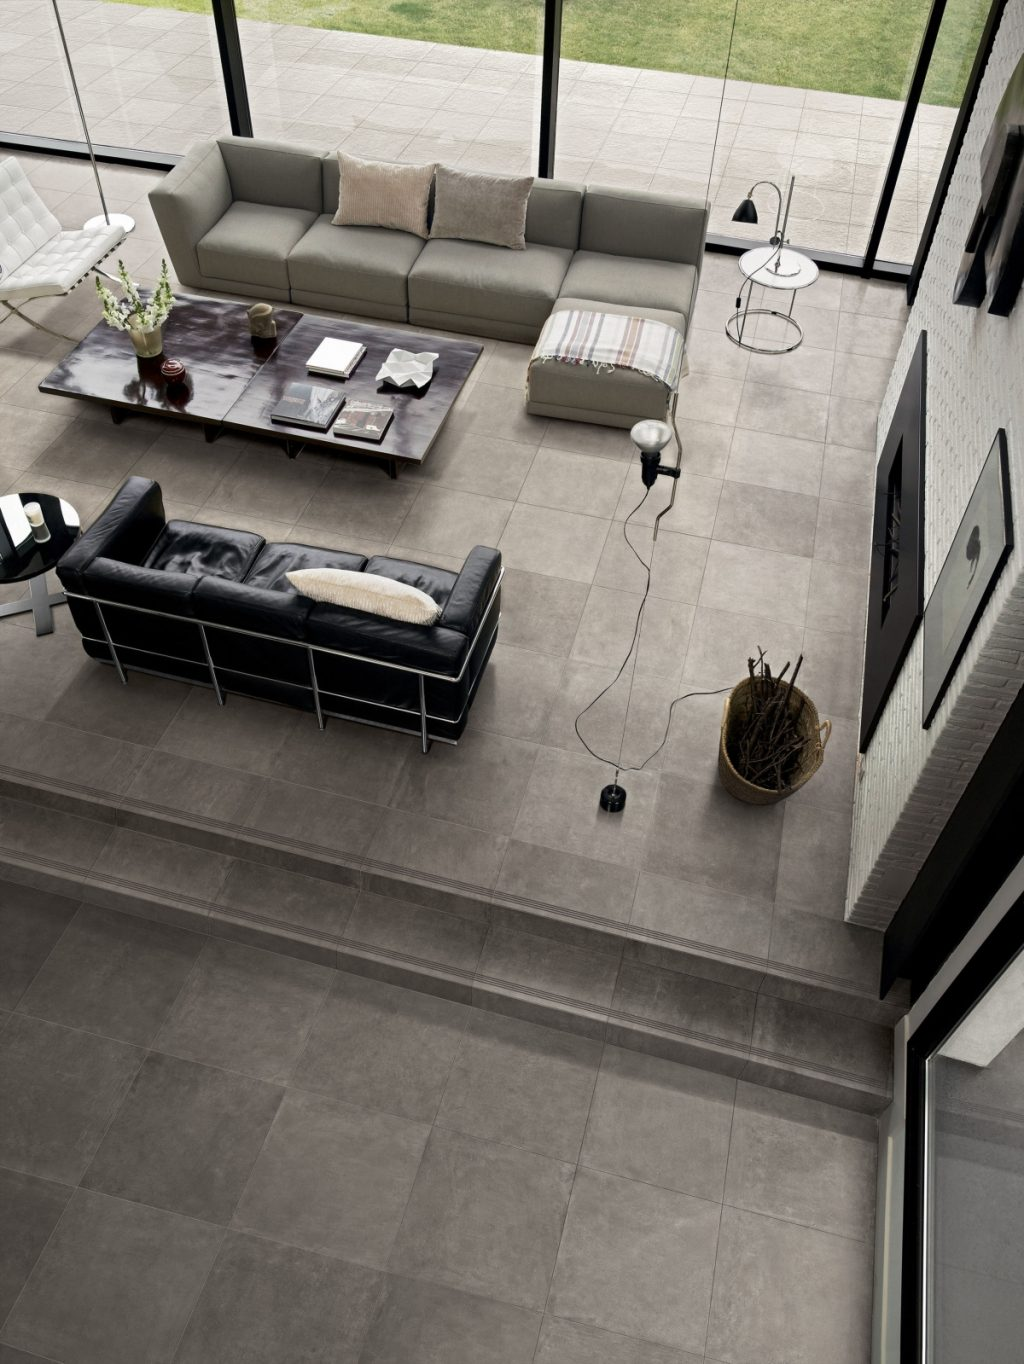 Ceramiche effetto cemento claymood gray 60x60cm